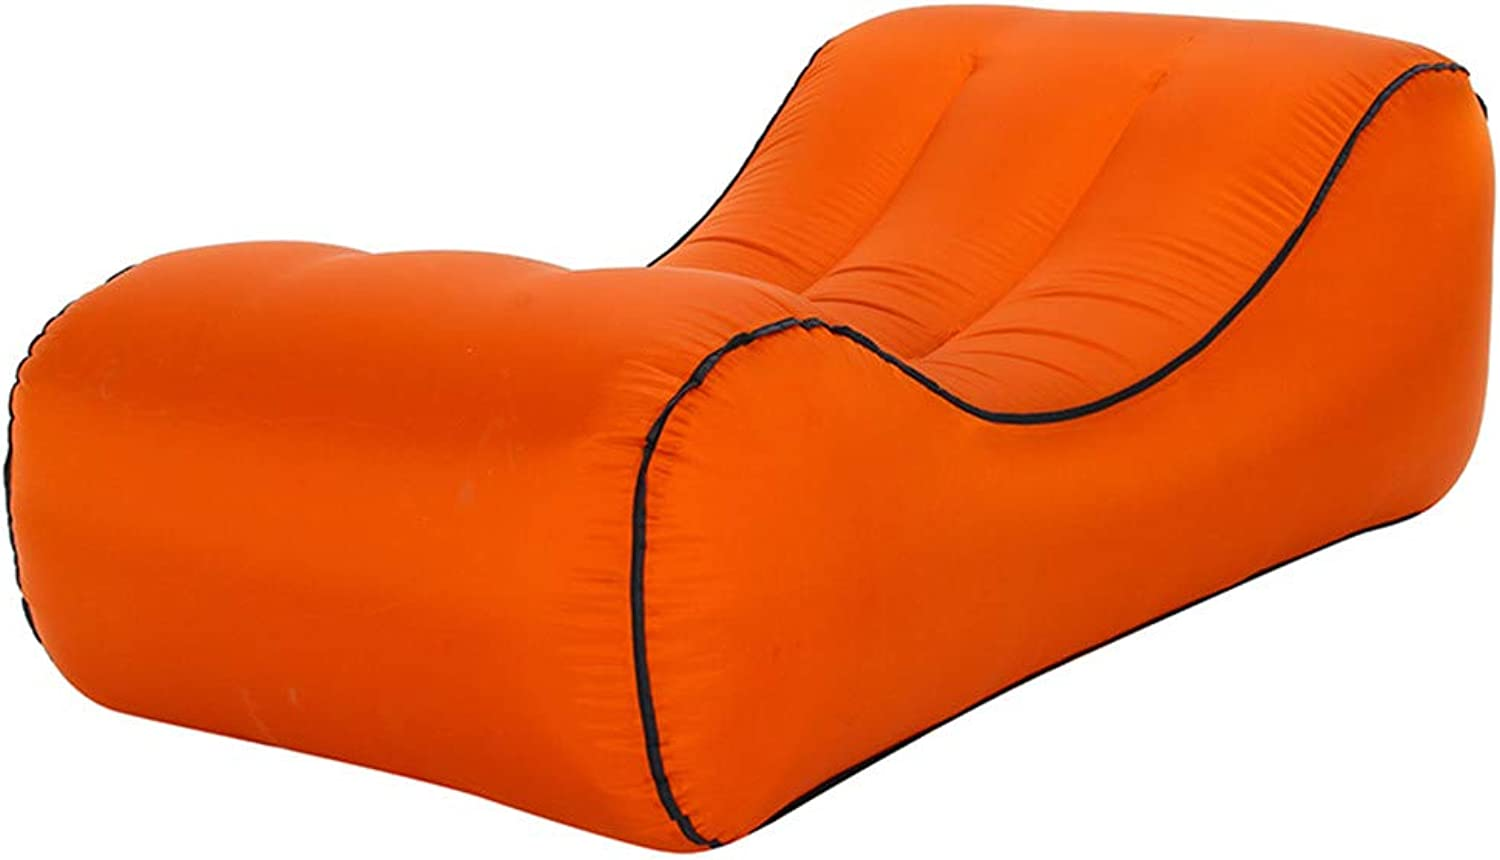 Outdoor Portable Water Inflatable Sofa, Sports Inflatable Chair Recliner, air Sofa and Camping Chair Single Easy to inflate Waterproof and Leakproof